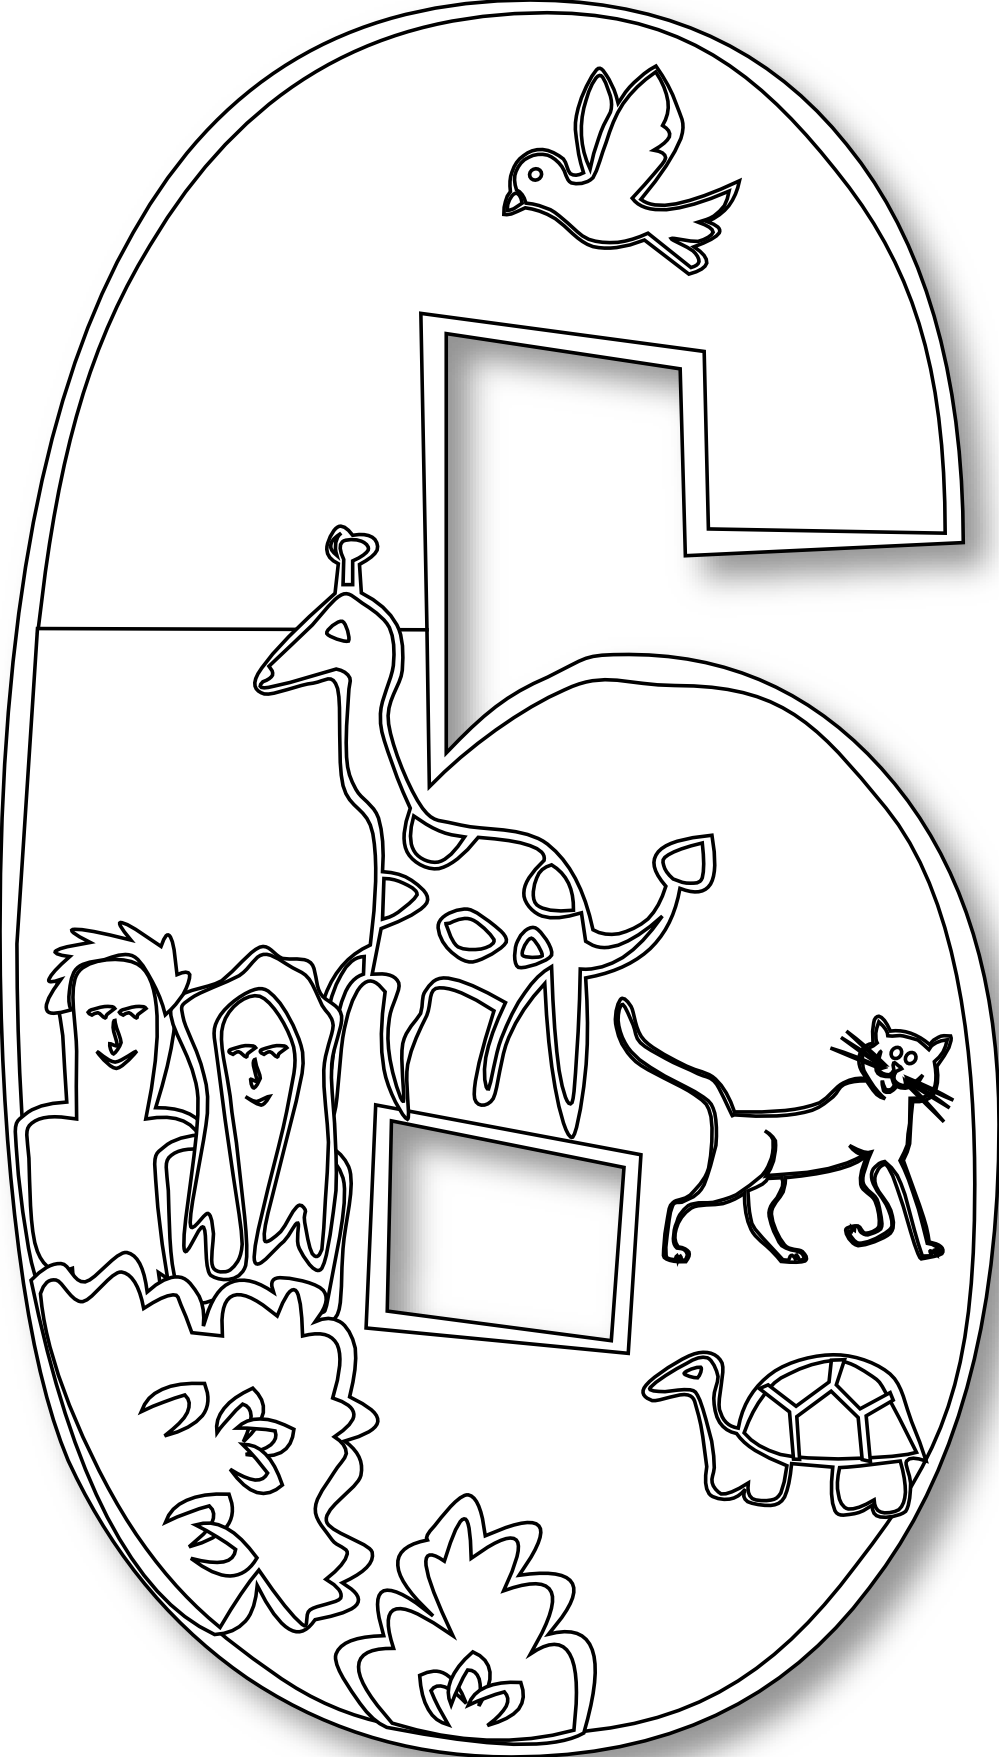 black and white bible coloring pages | number clipart black and white creation - Google Search ...